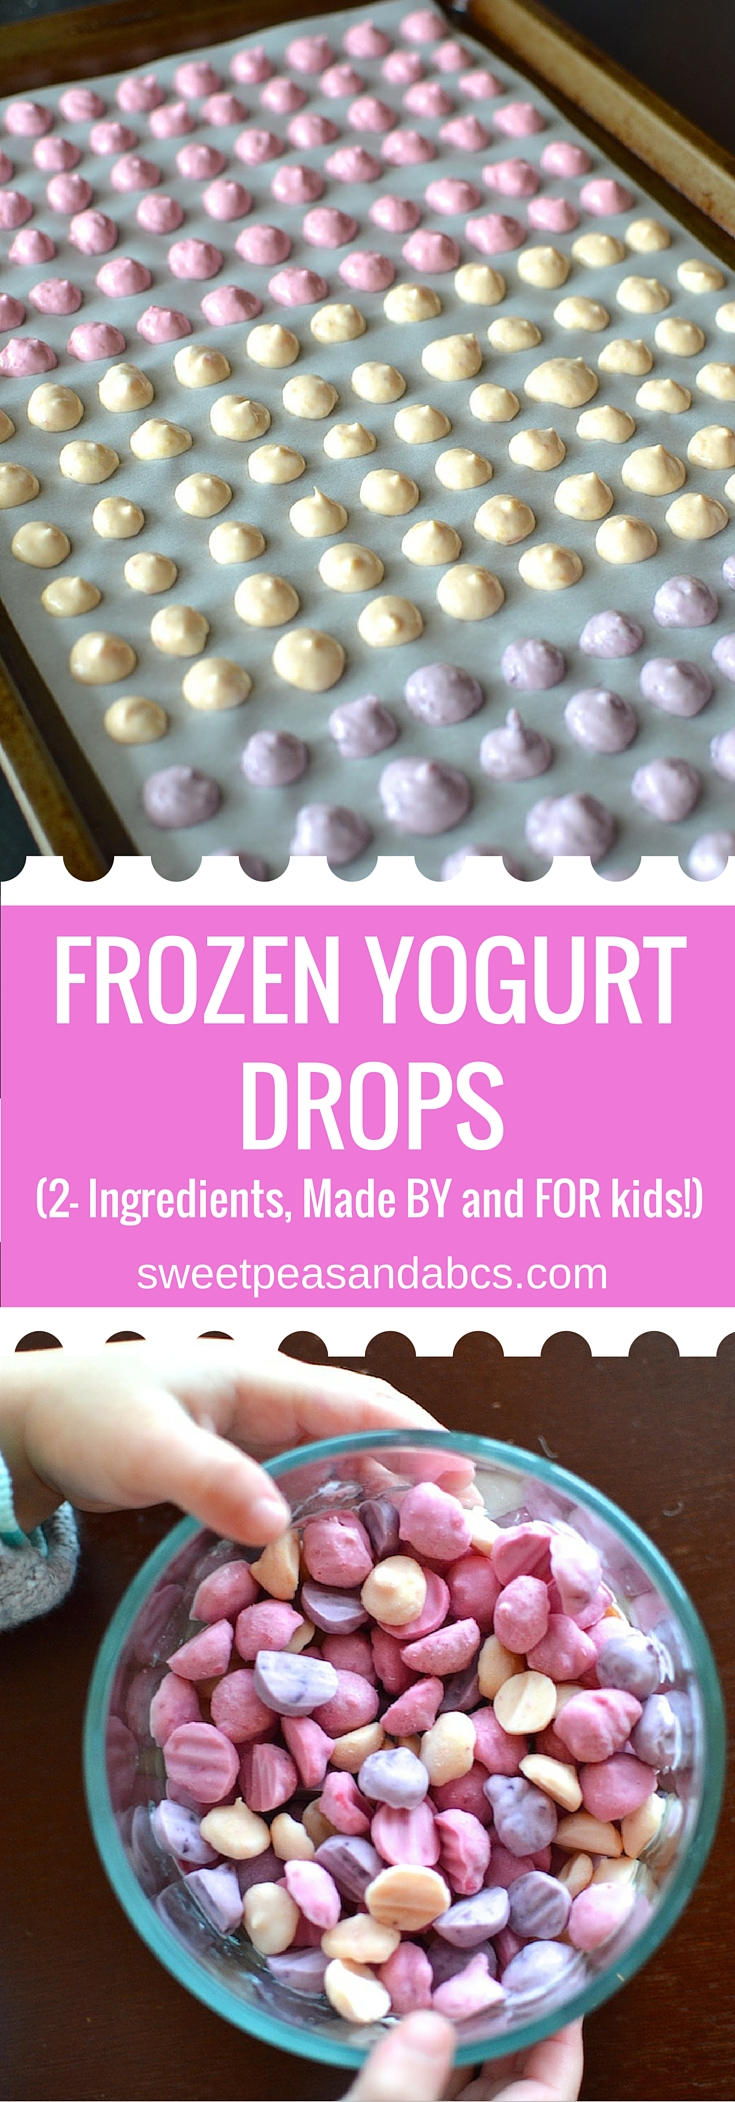 Frozen Yogurt Drops - A two-ingredient, real-food snack recipe made BY and FOR kids! Whole milk yogurt and fruit puree, that's it! ~sweetpeasandabcs.com